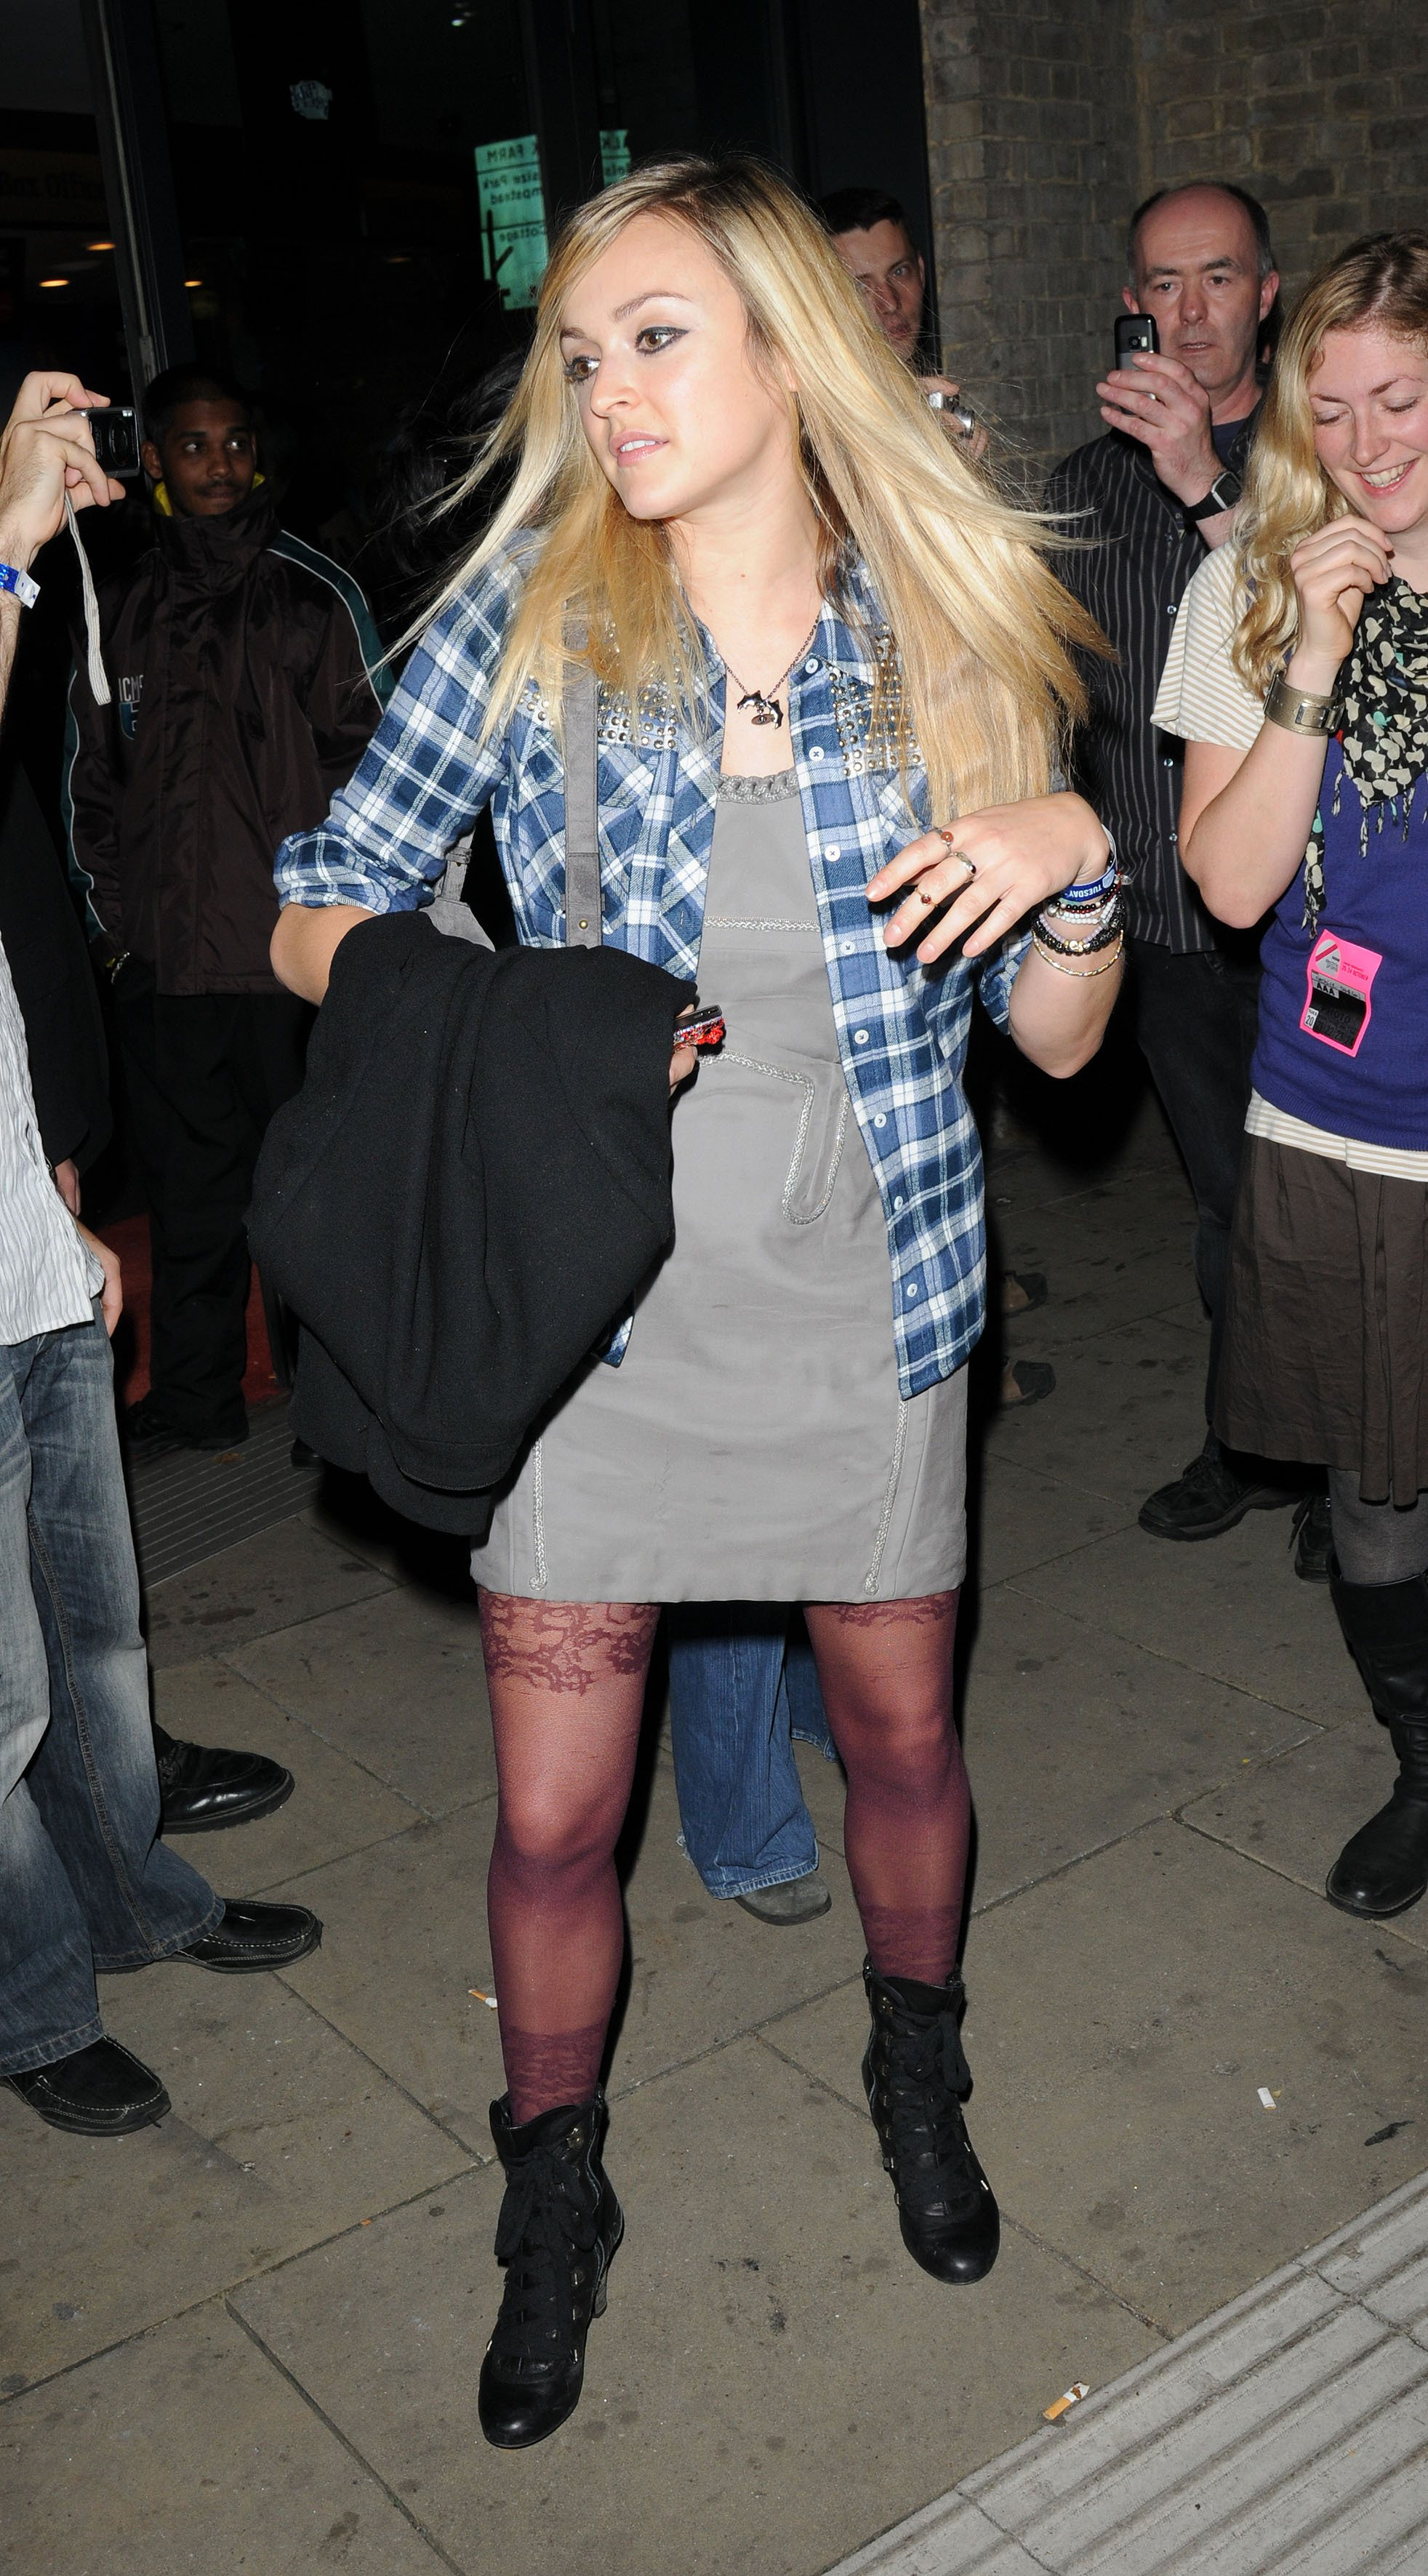 06359_Fearne_Cotton_Arrives_for_Robbie_Williams_gig_as_part_of_BBC_Electric_Proms_Festival_06_122_249lo.jpg